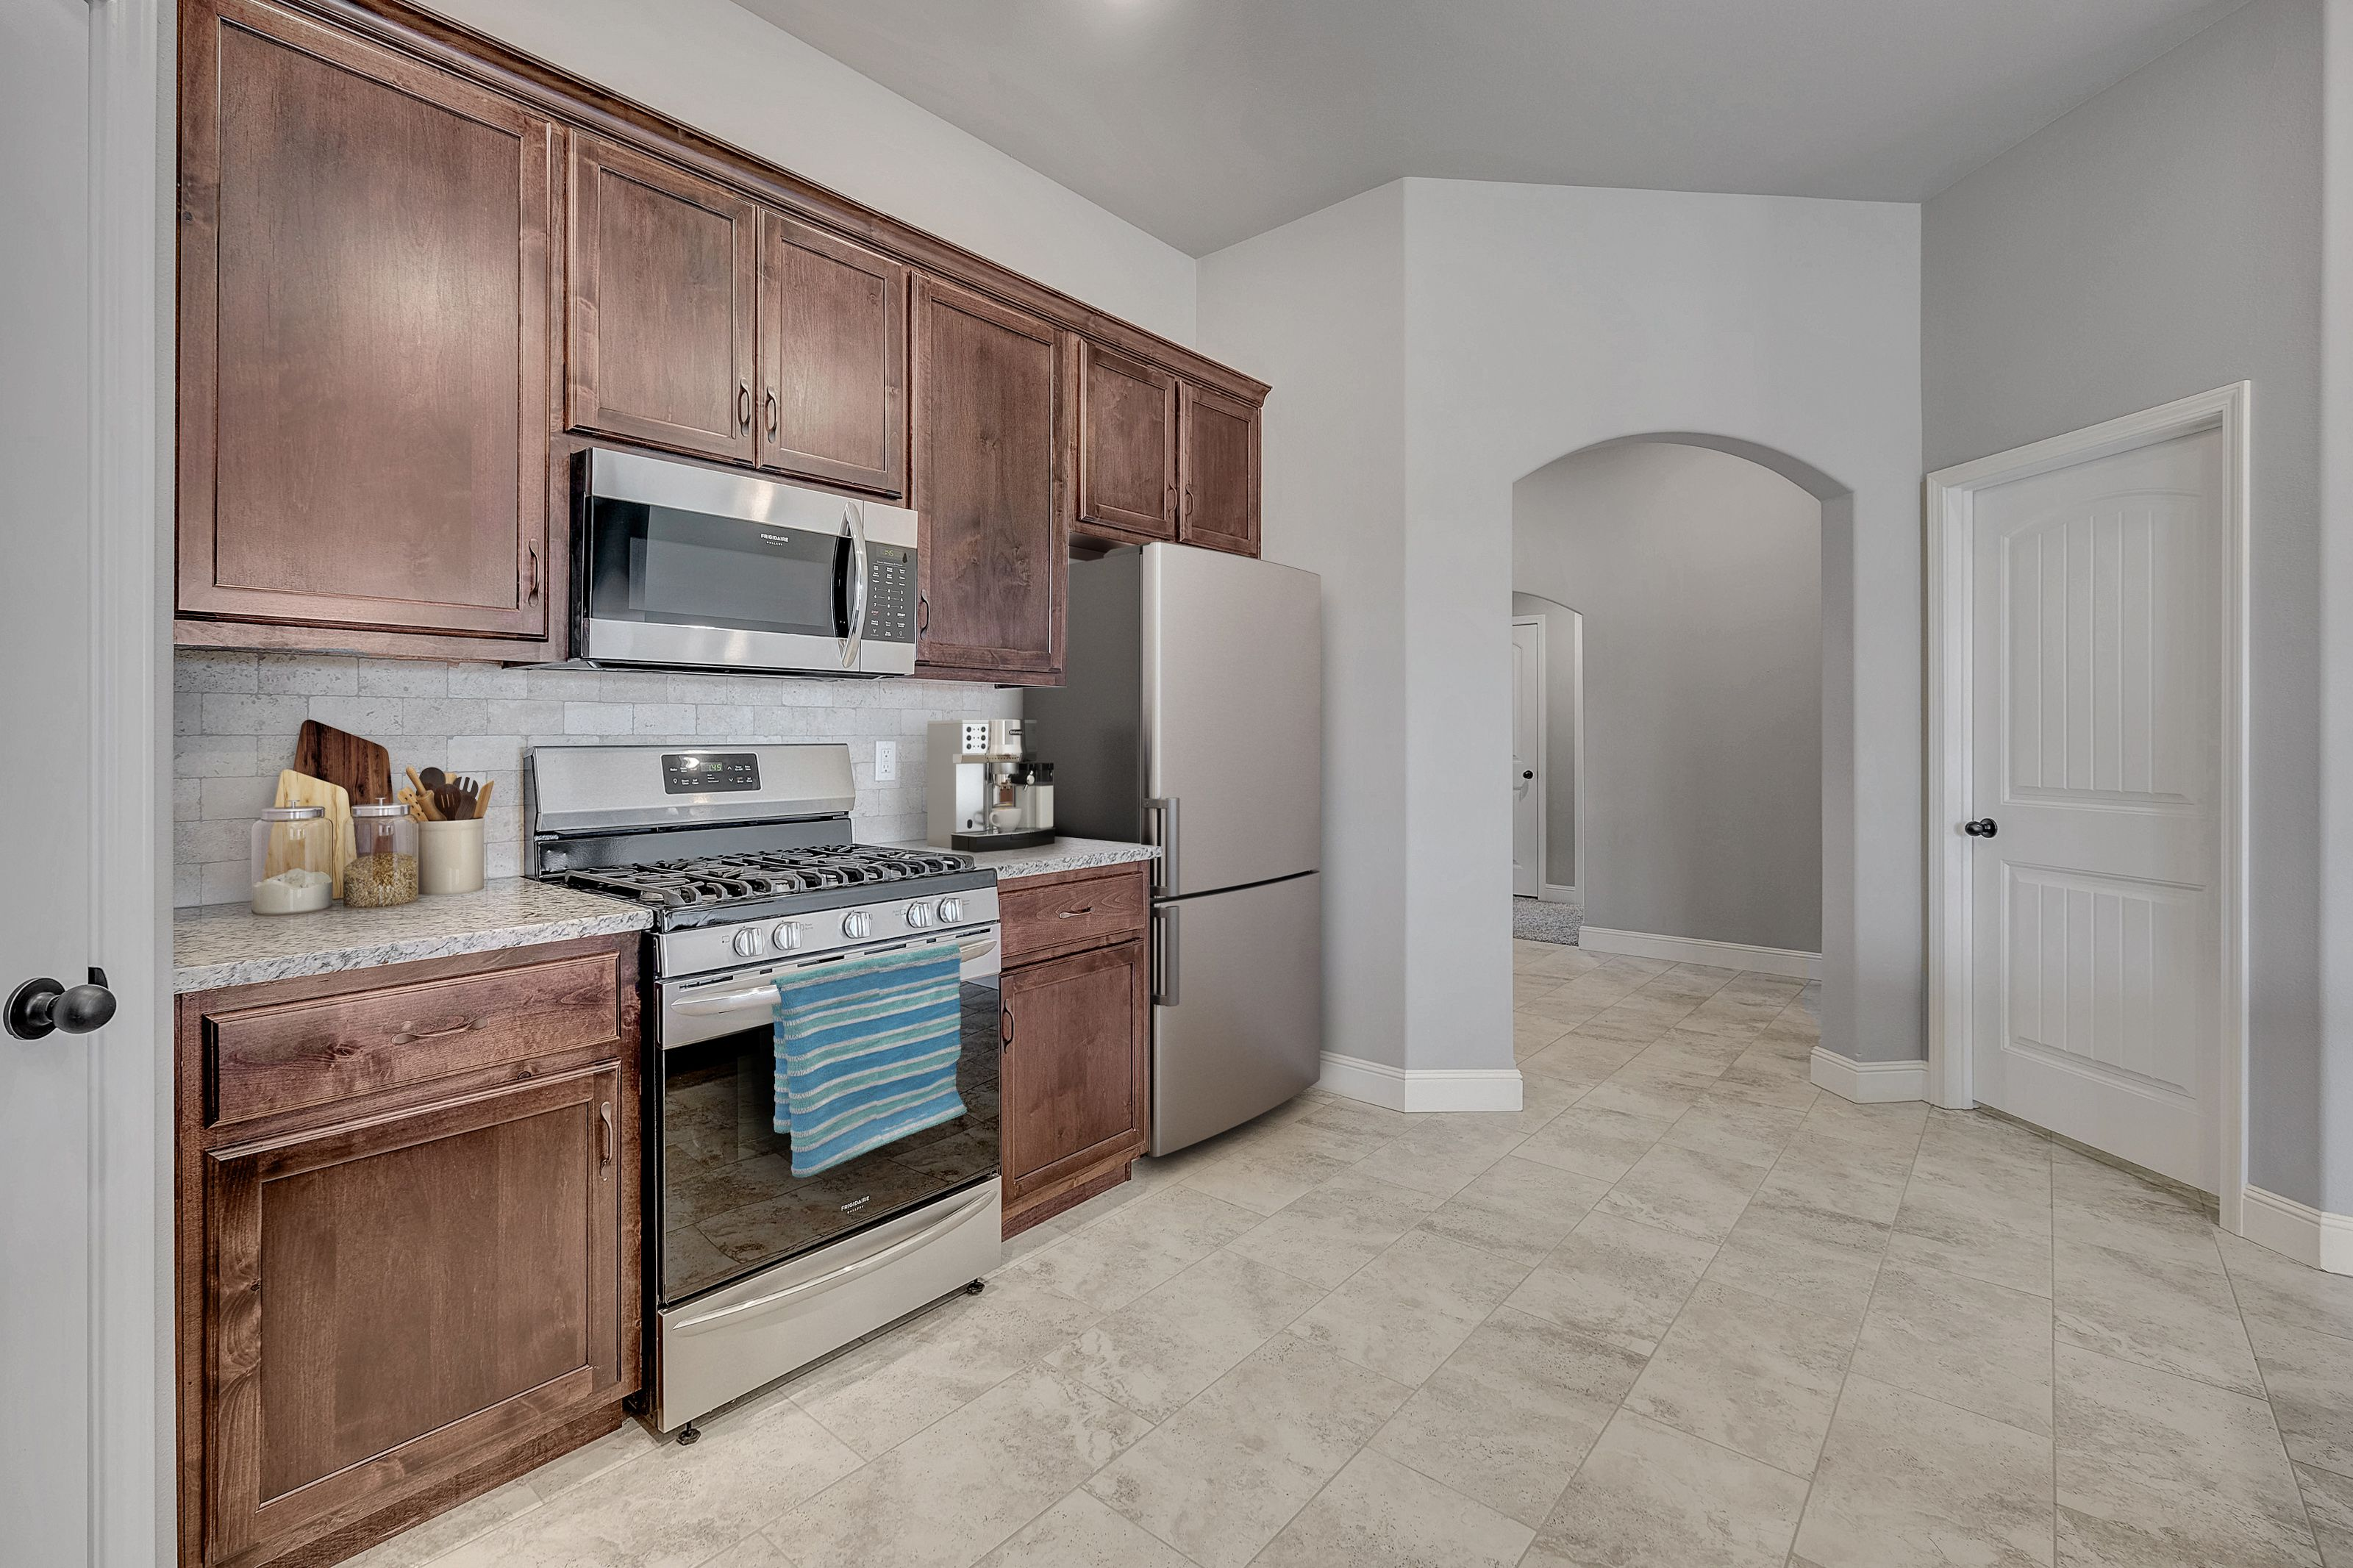 Kitchen featured in the 1860KP Series By Schuber Mitchell Homes in Joplin, MO